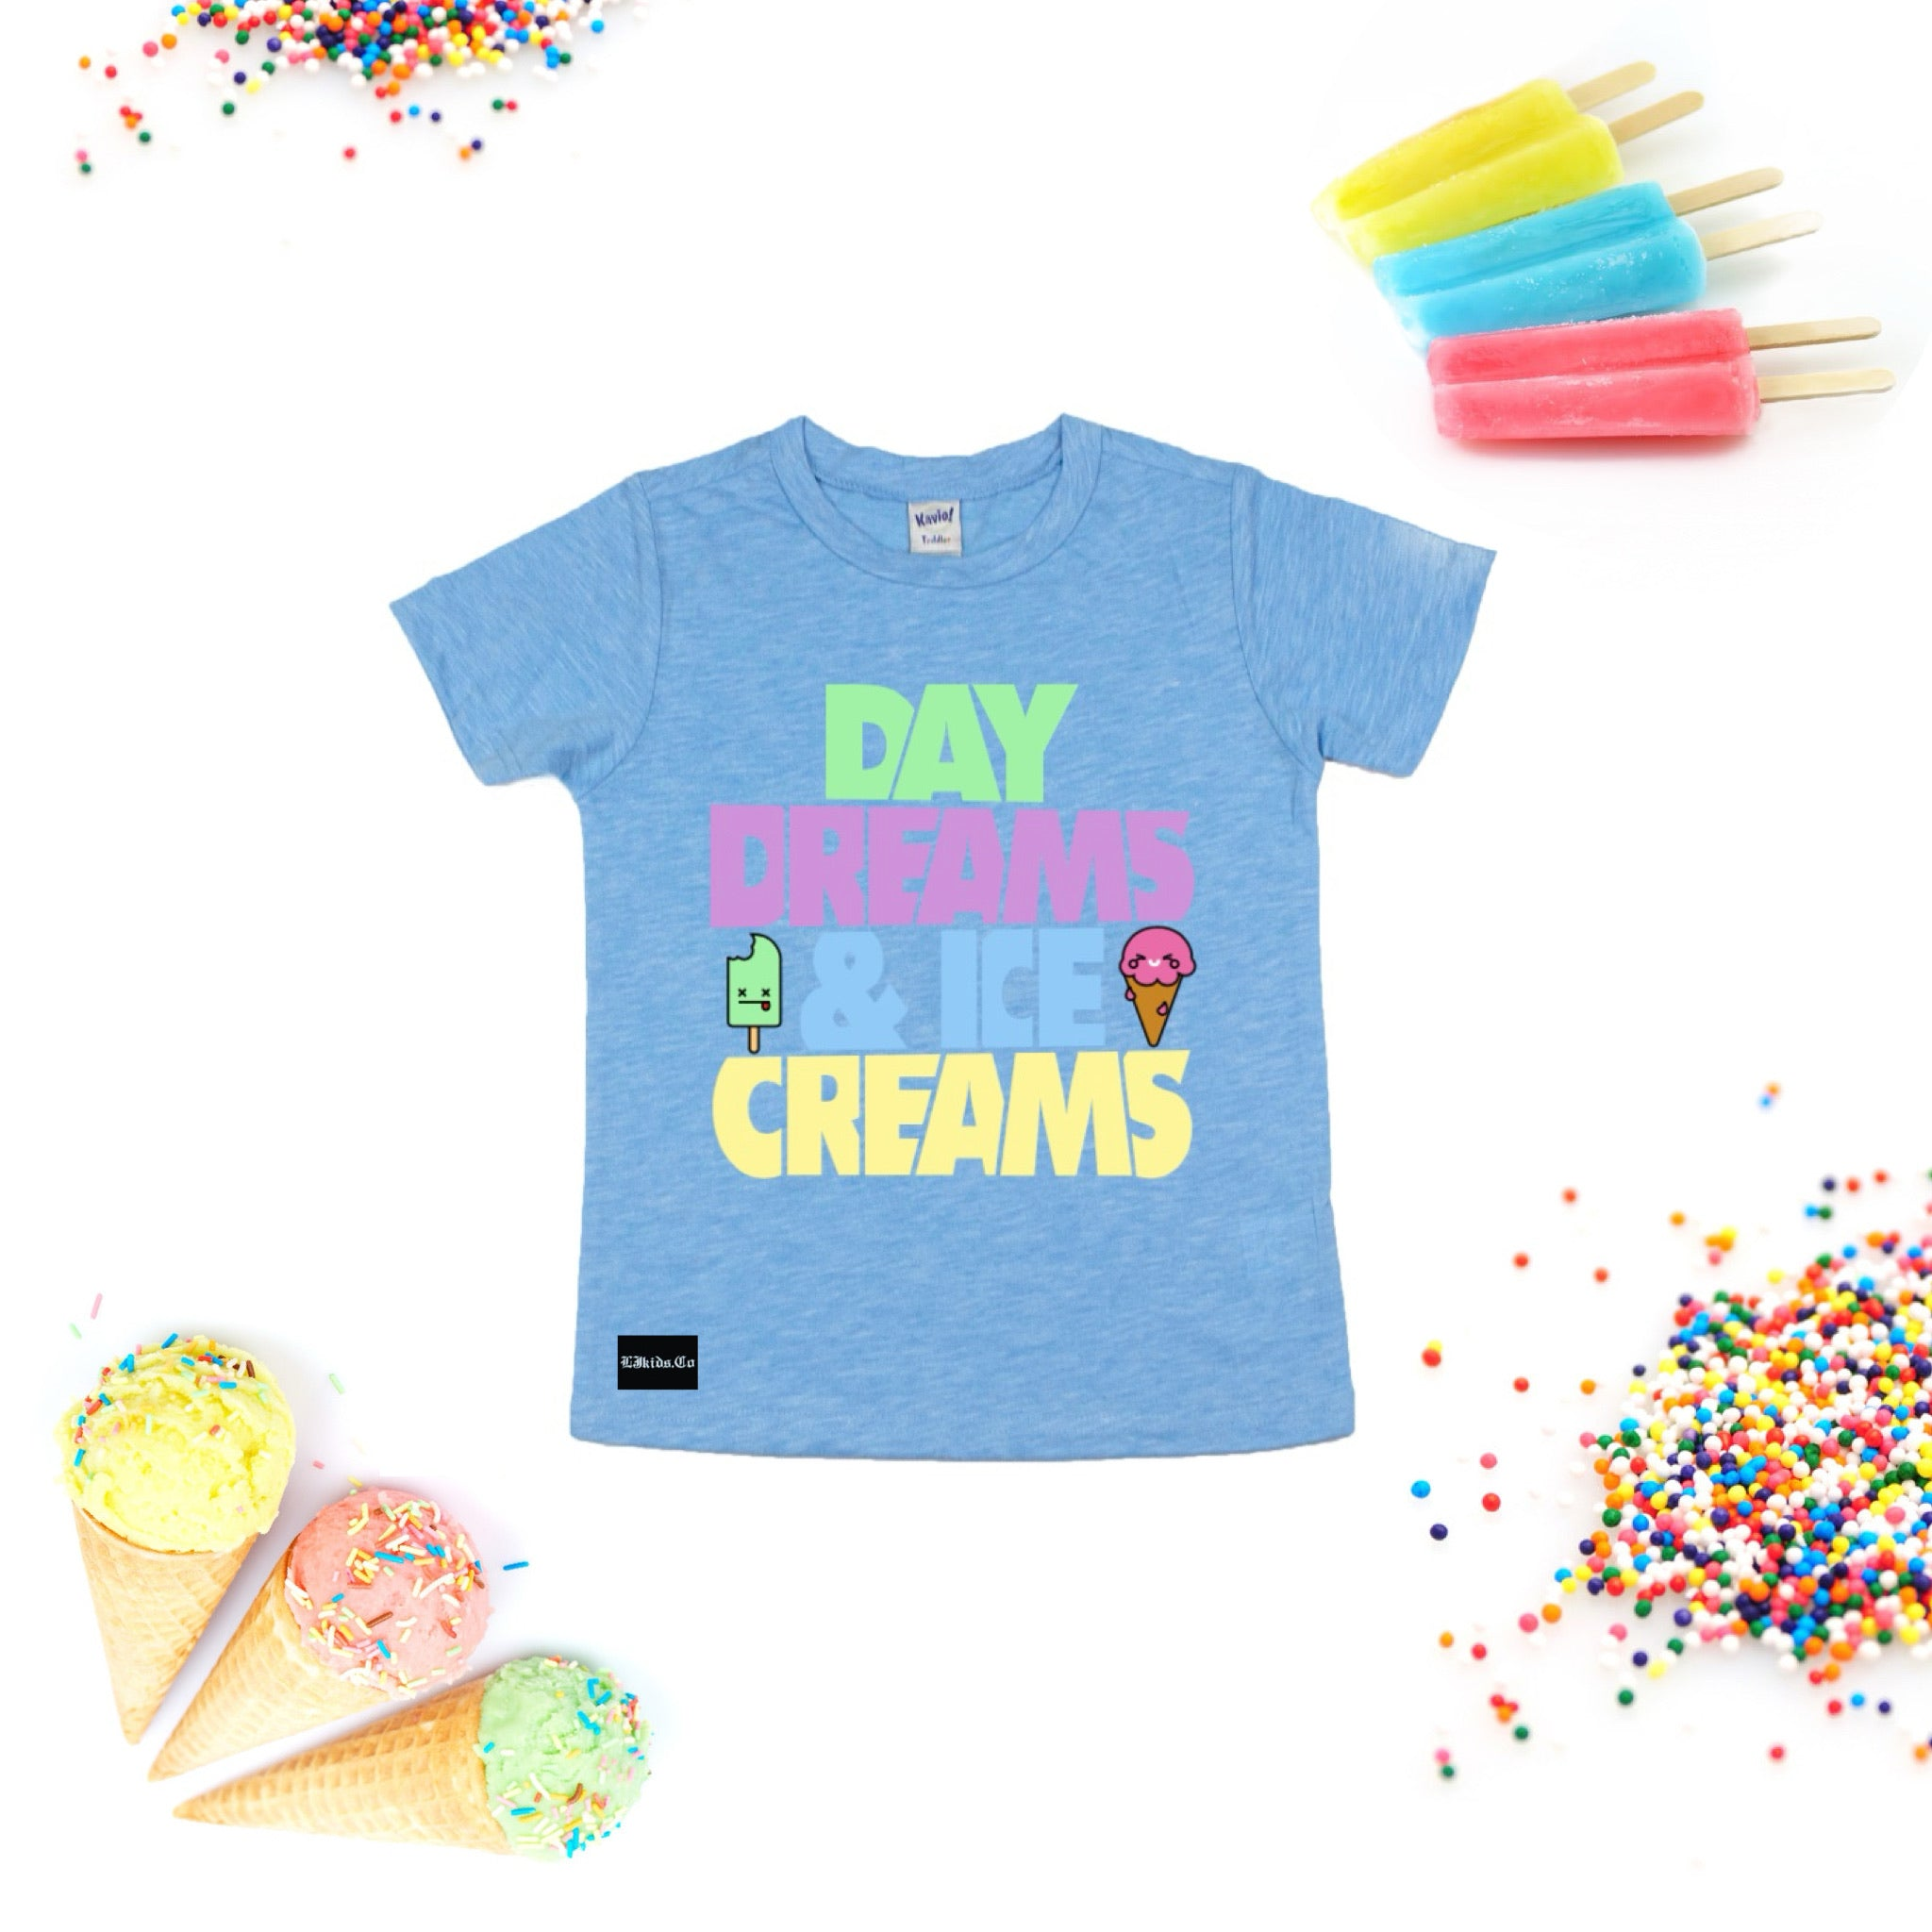 Day Dreams Tee